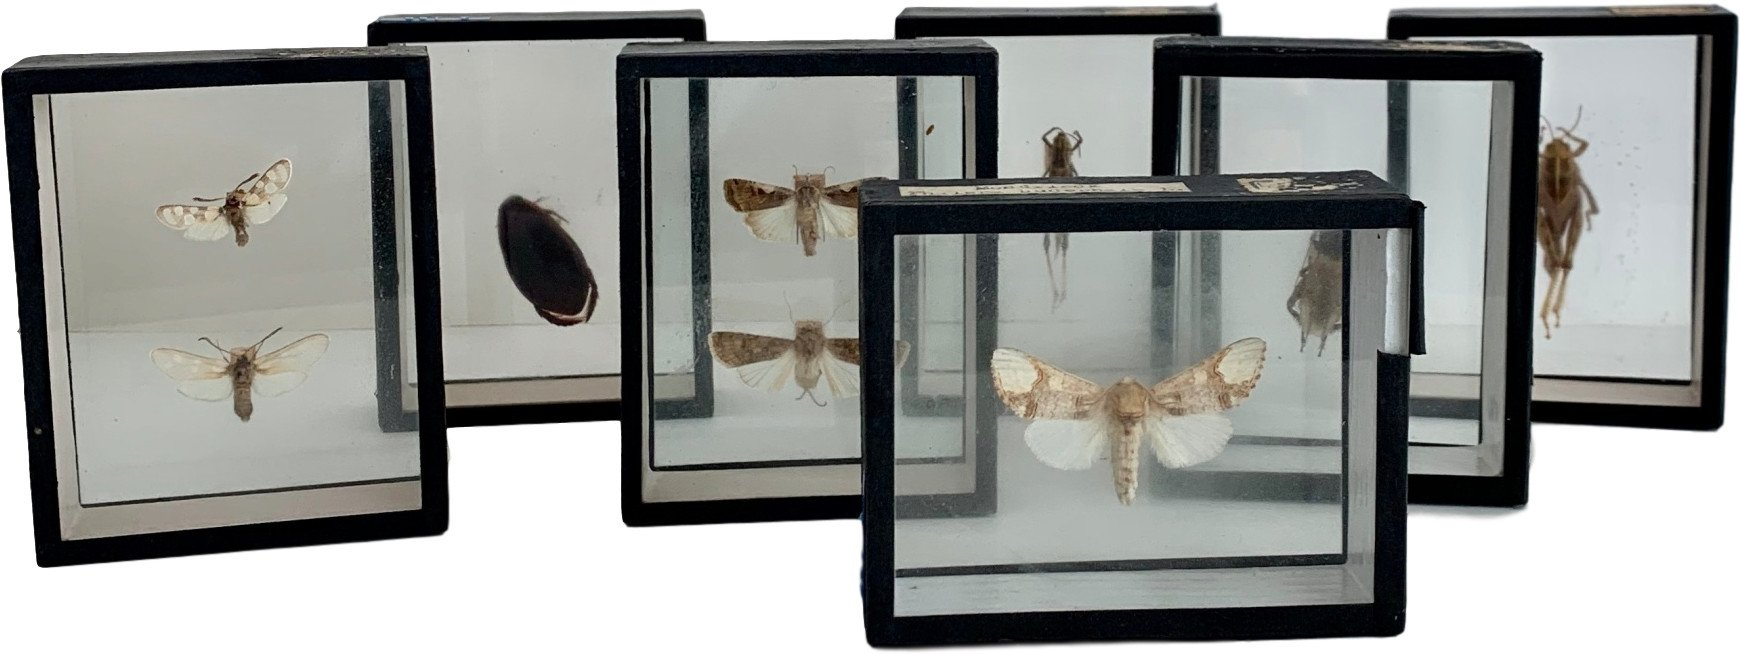 Entomological Cabinet, Austria, 1950s